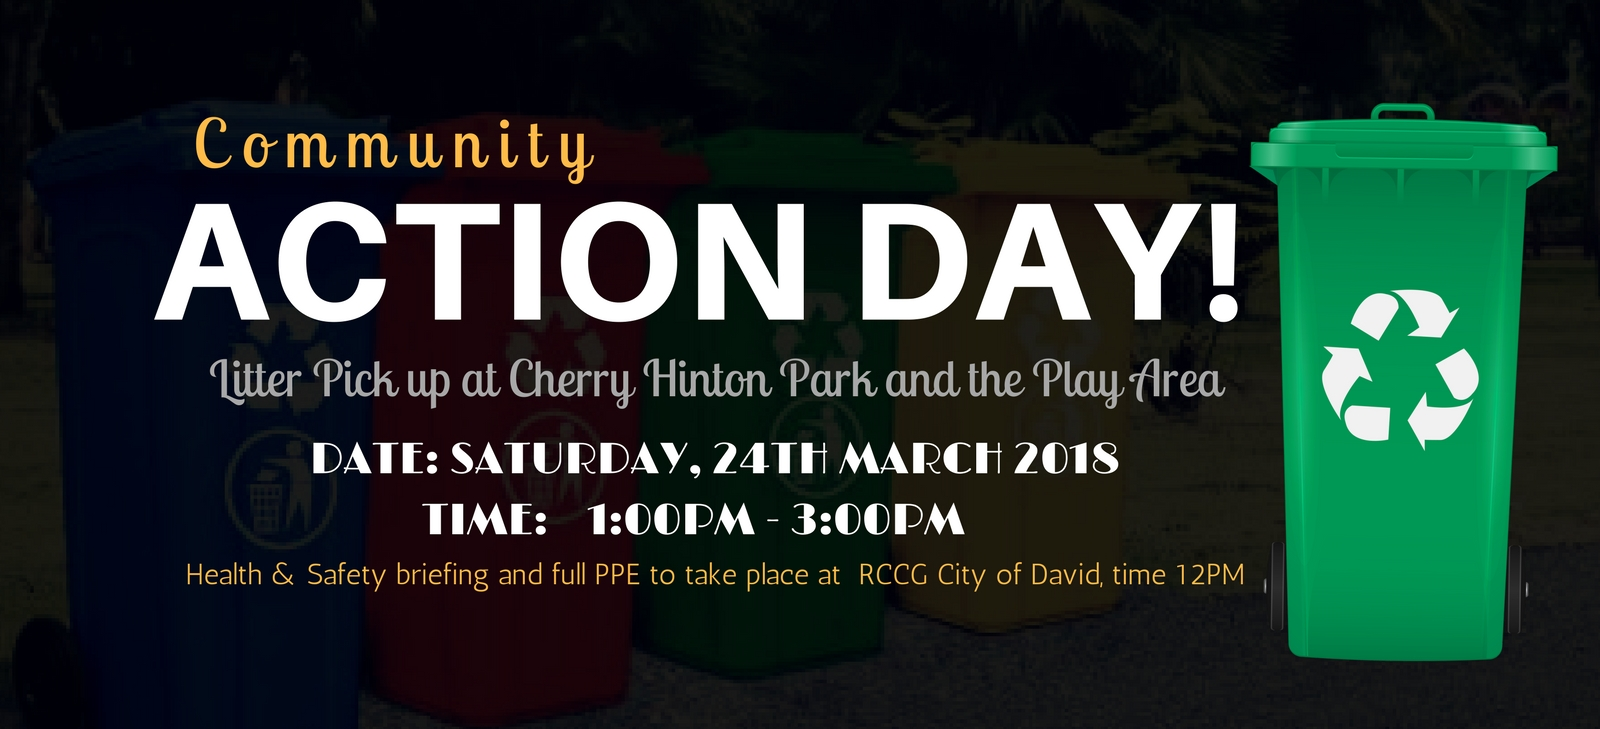 community-action-day